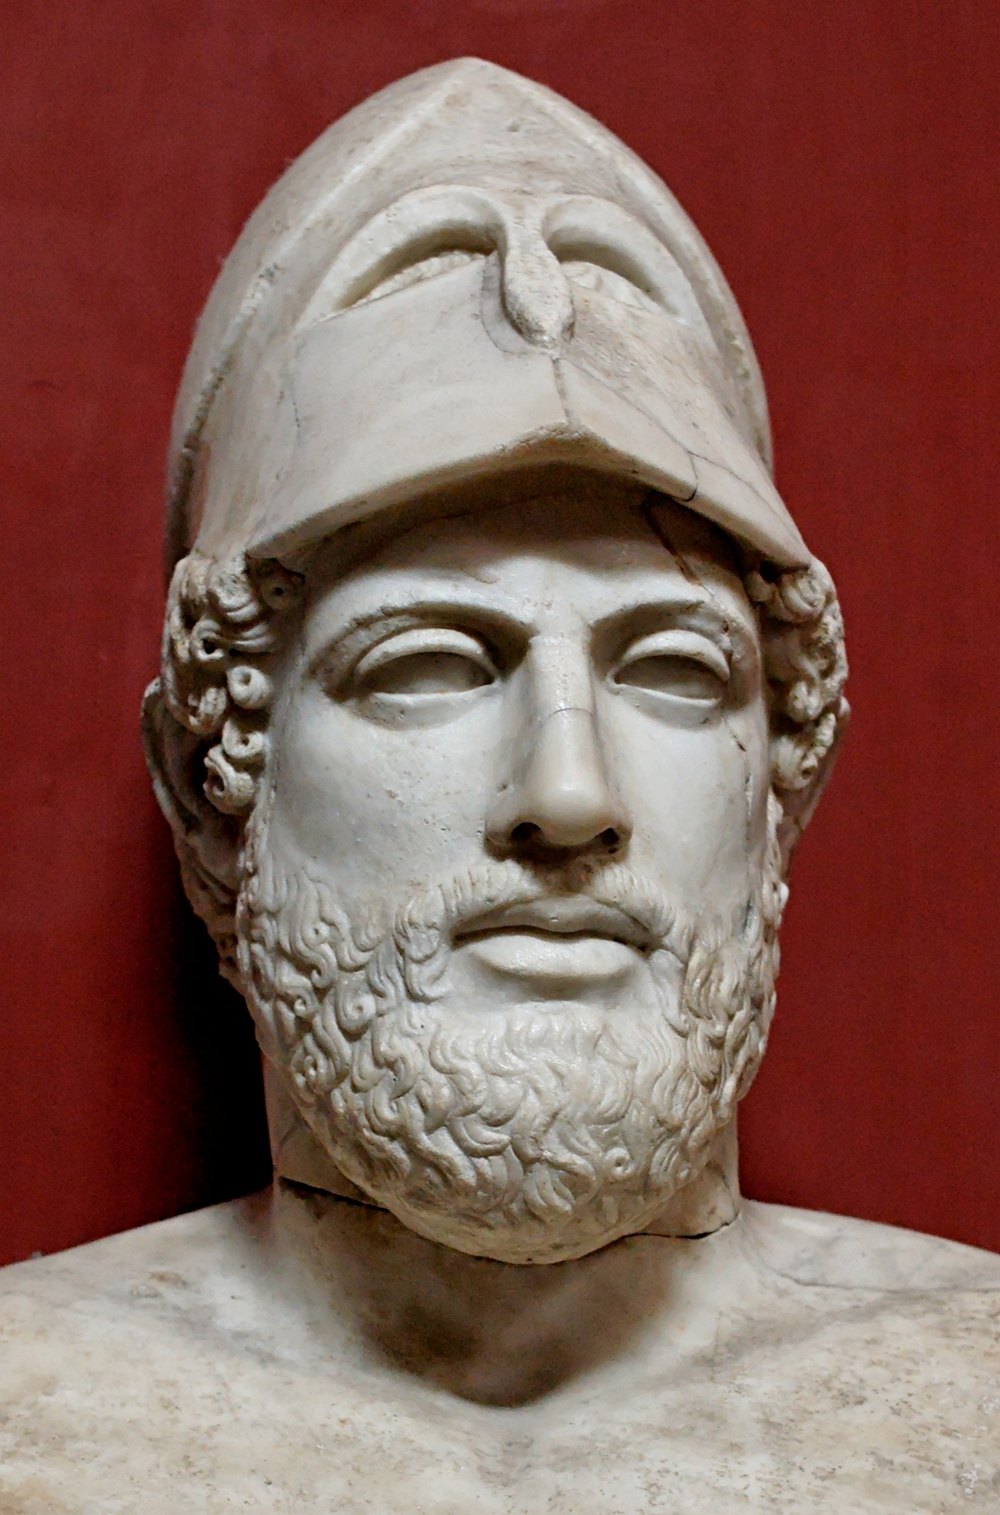 Pericles 495-429BC - First Citizen of Athens